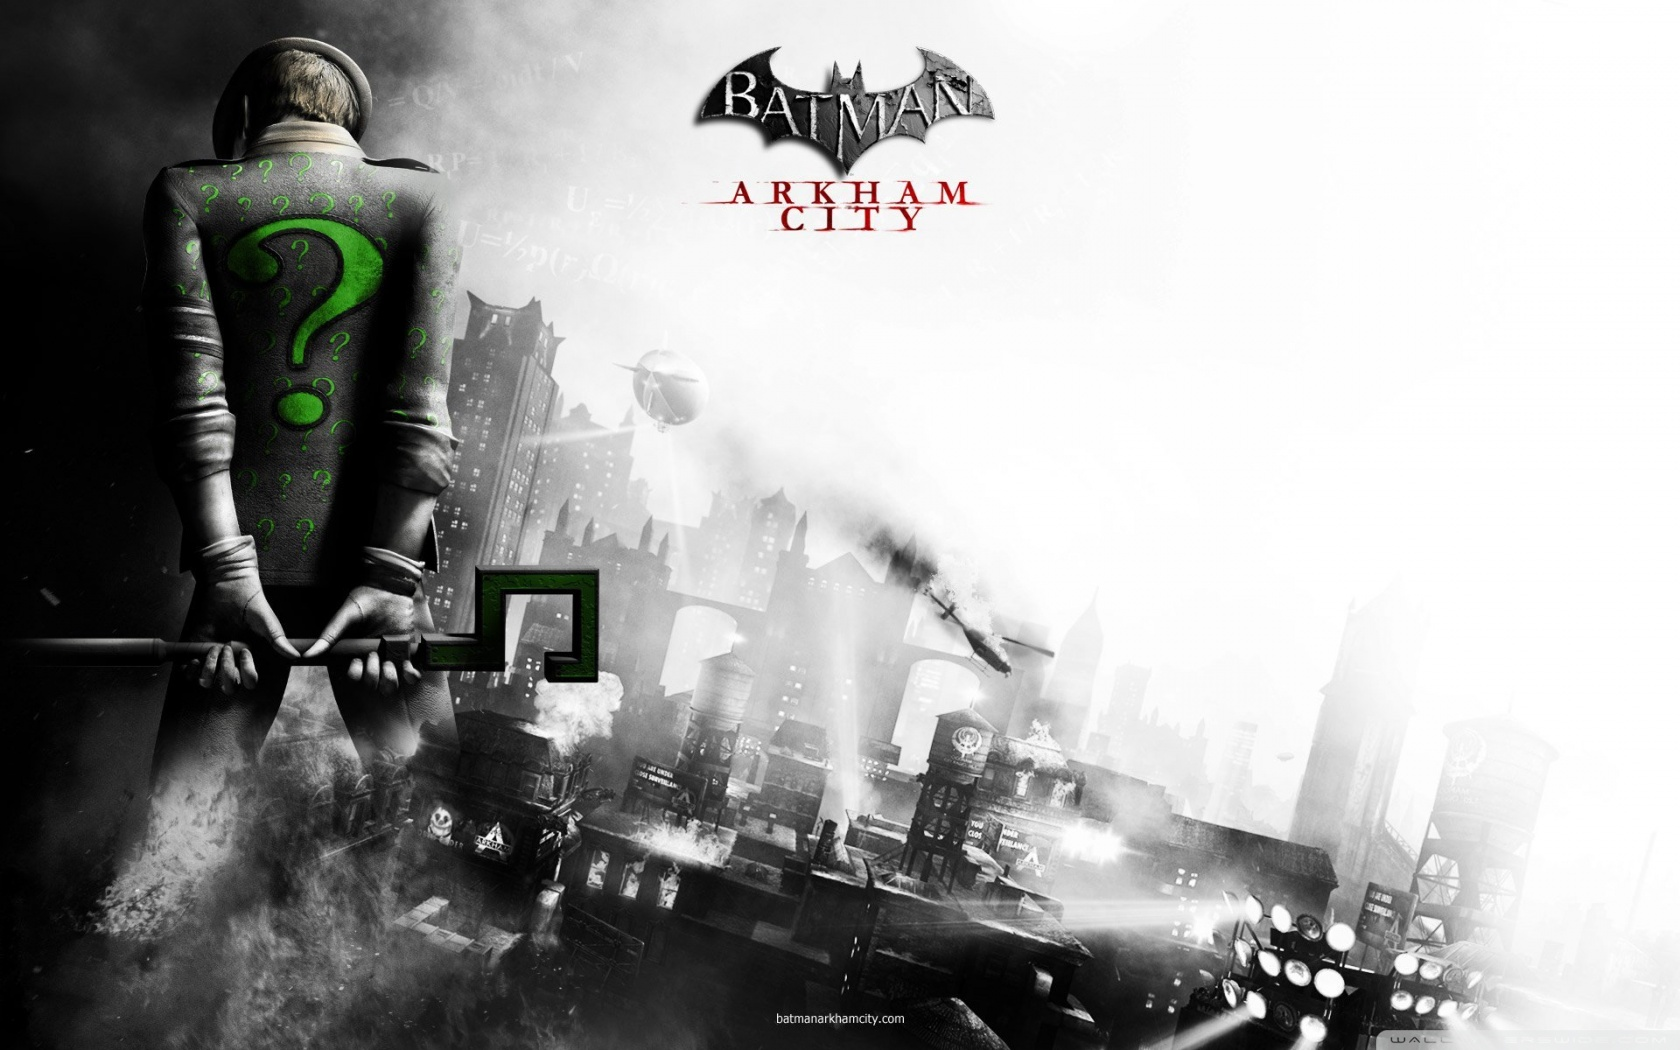 Batman Game Windows 8 Backgrounds All for Windows 10 1680x1050